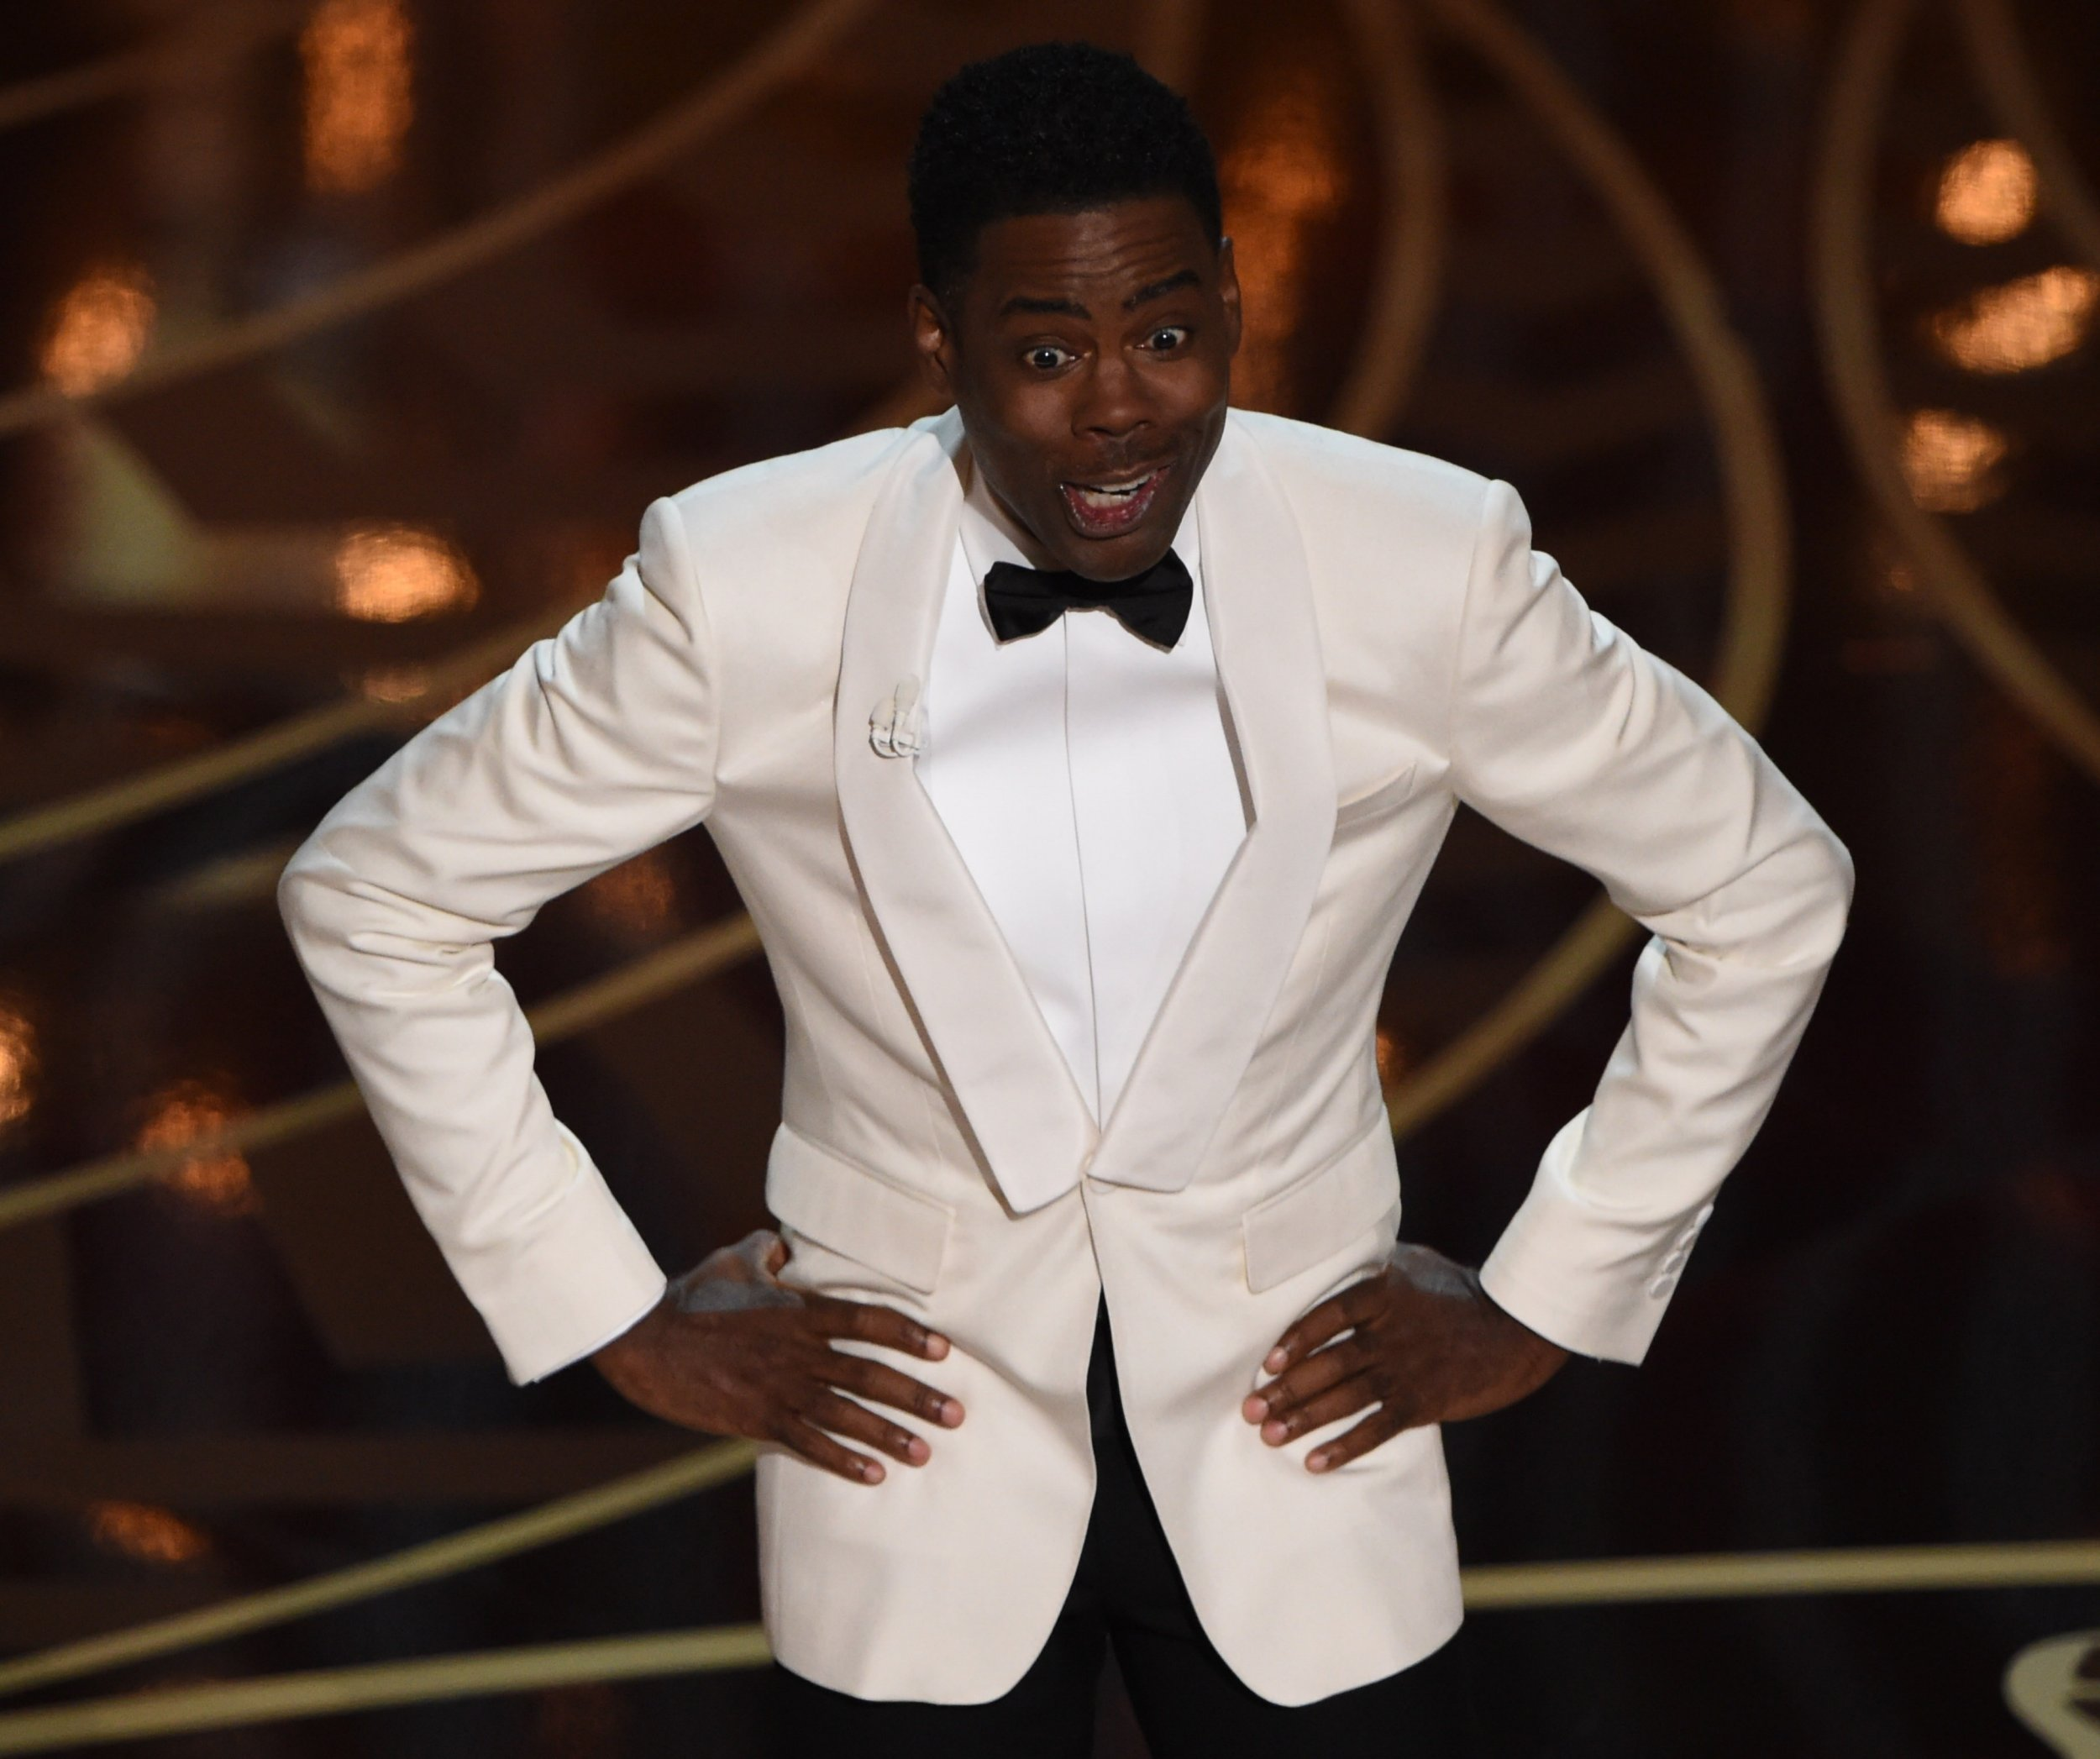 Actor Chris Rock presents on stage at the 88th Oscars on February 28, 2016 in Hollywood, California. AFP PHOTO / MARK RALSTONMARK RALSTON/AFP/Getty Images